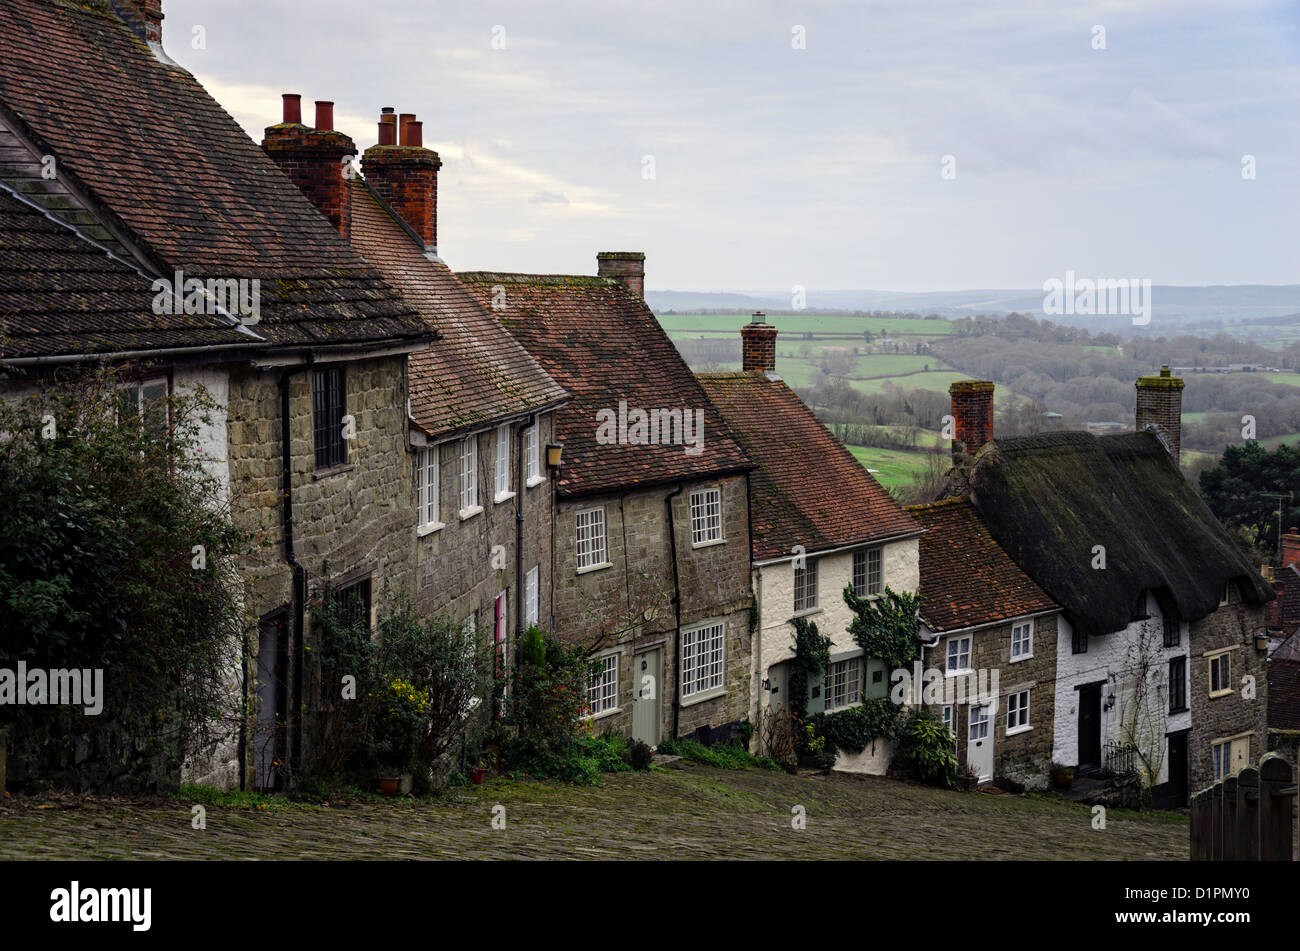 A row of cottages on a steep cobbled street at Gold Hill in Shafetsbury, Dorset - Stock Image